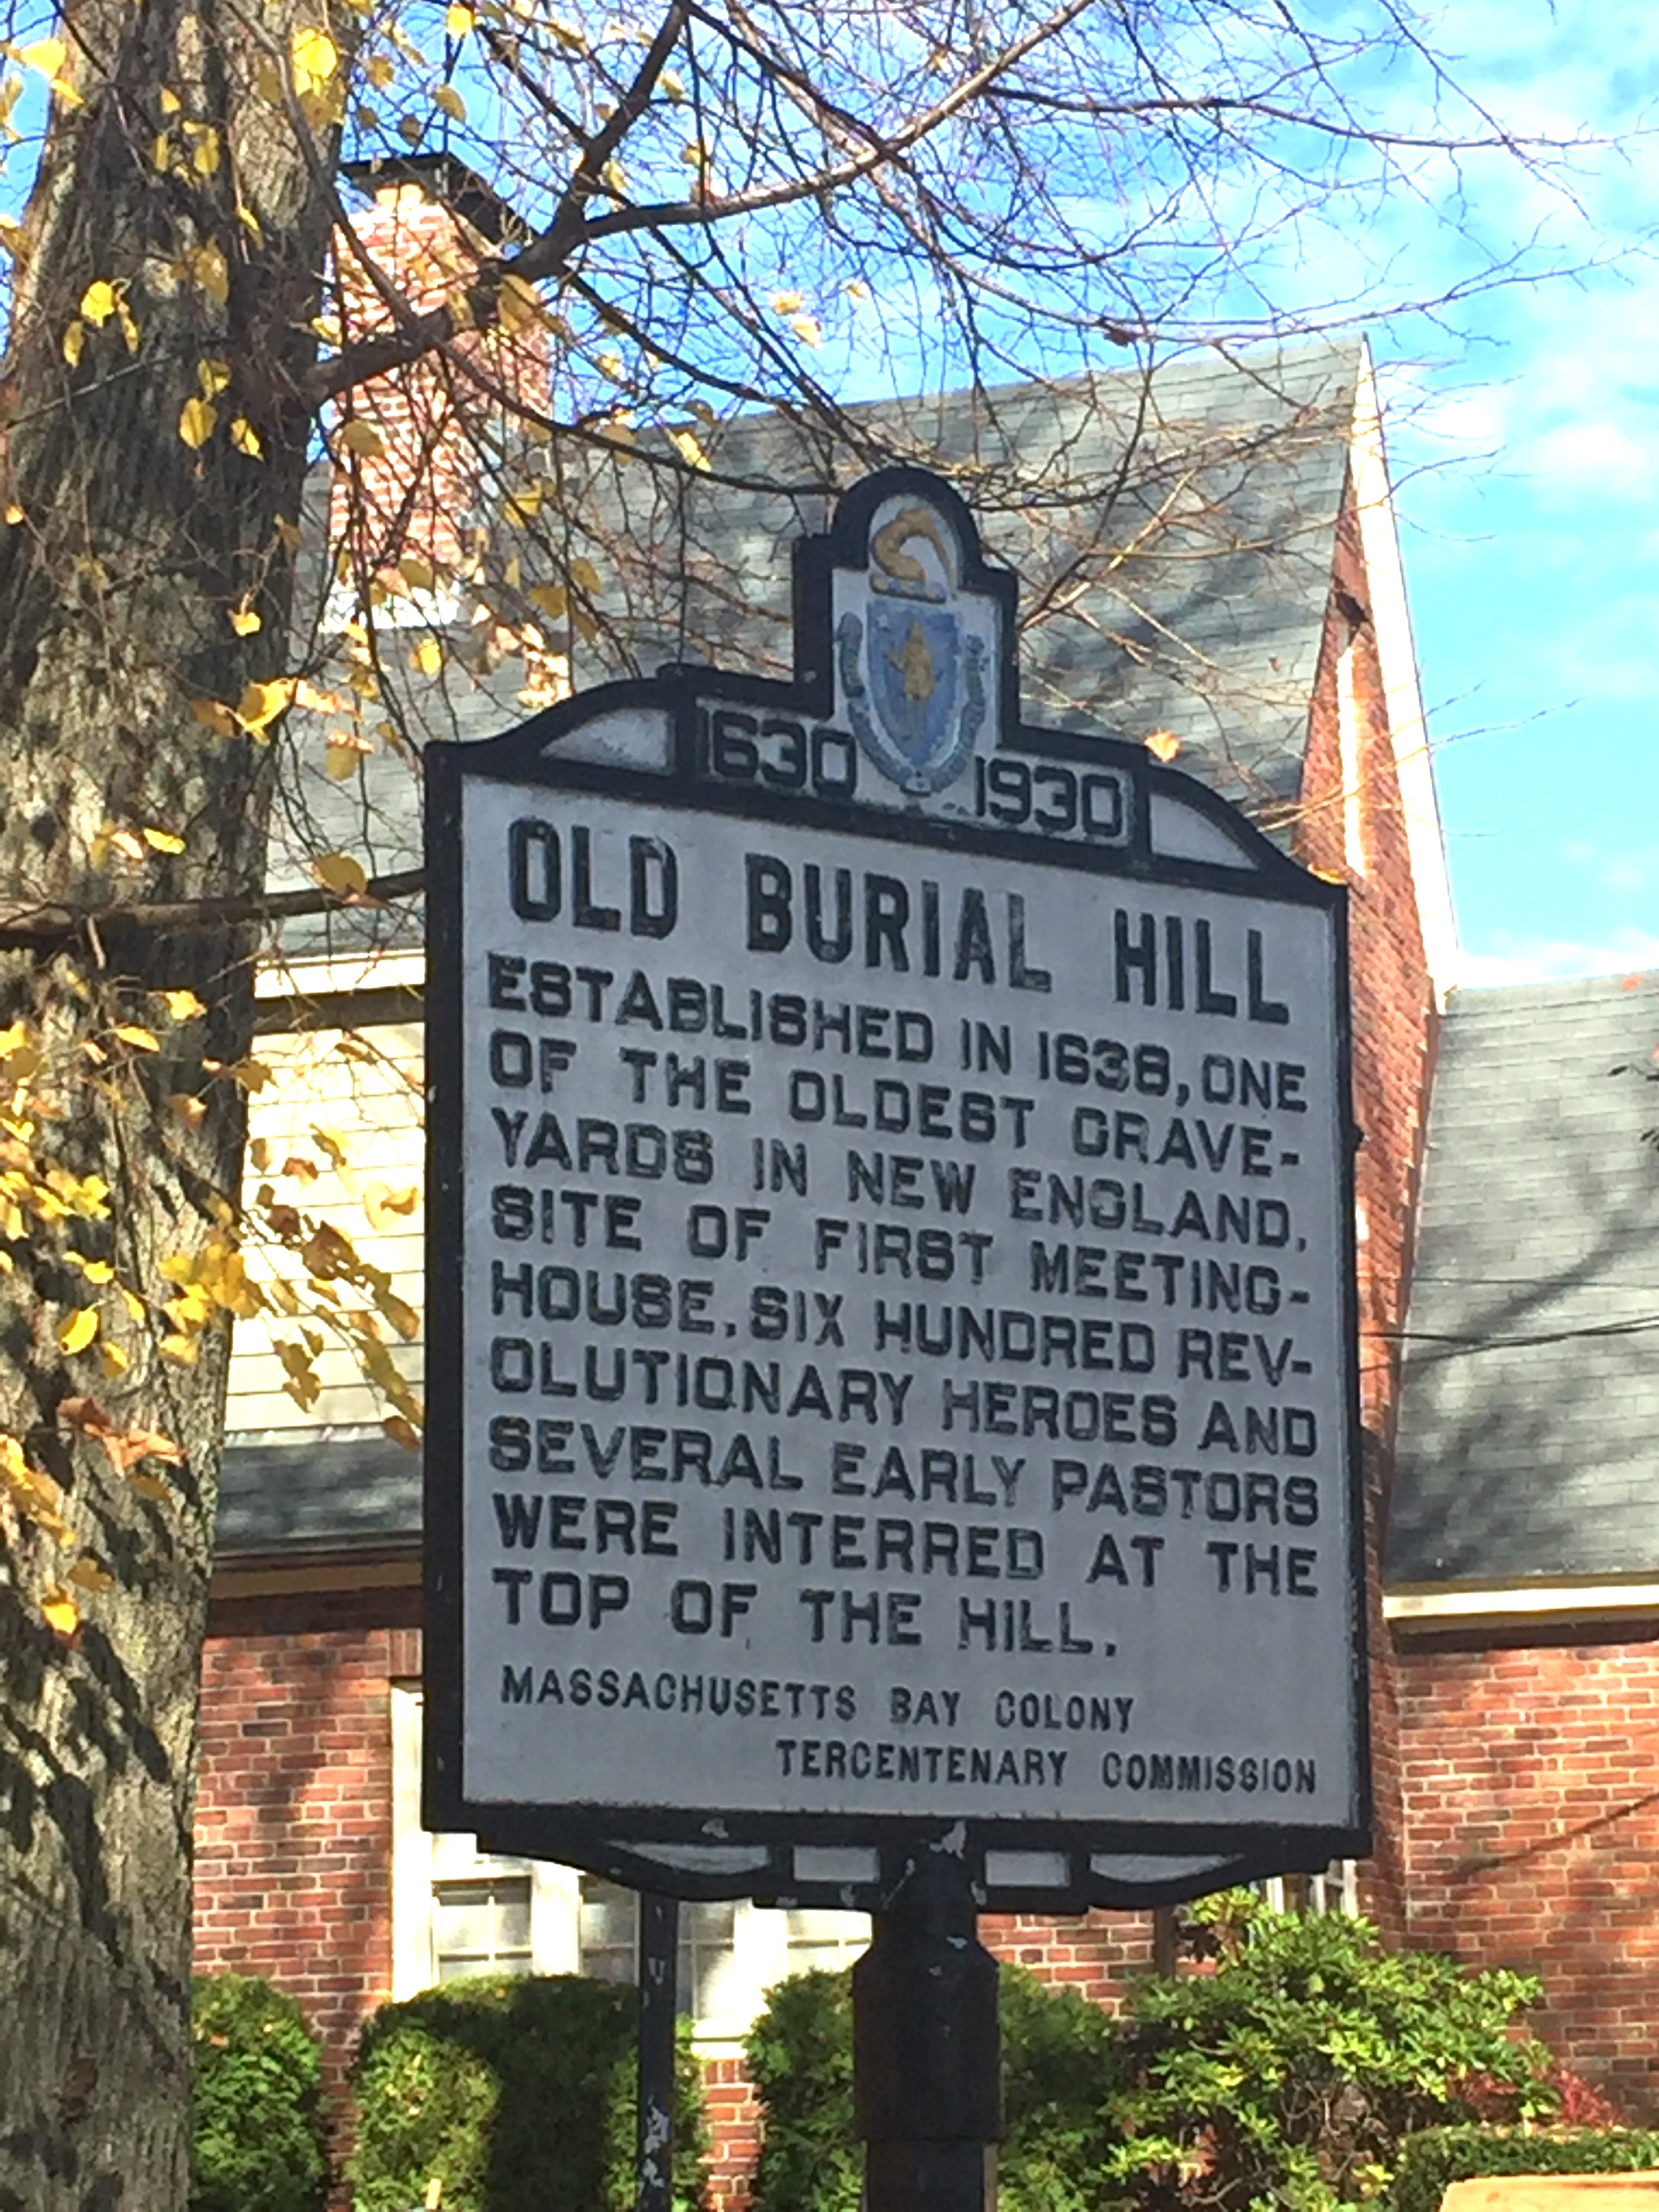 Old Burial Hill in Marblehead, MA has been used in several movie shoots including Hocus Pocus and The Good Son. Photo New England Fine Living